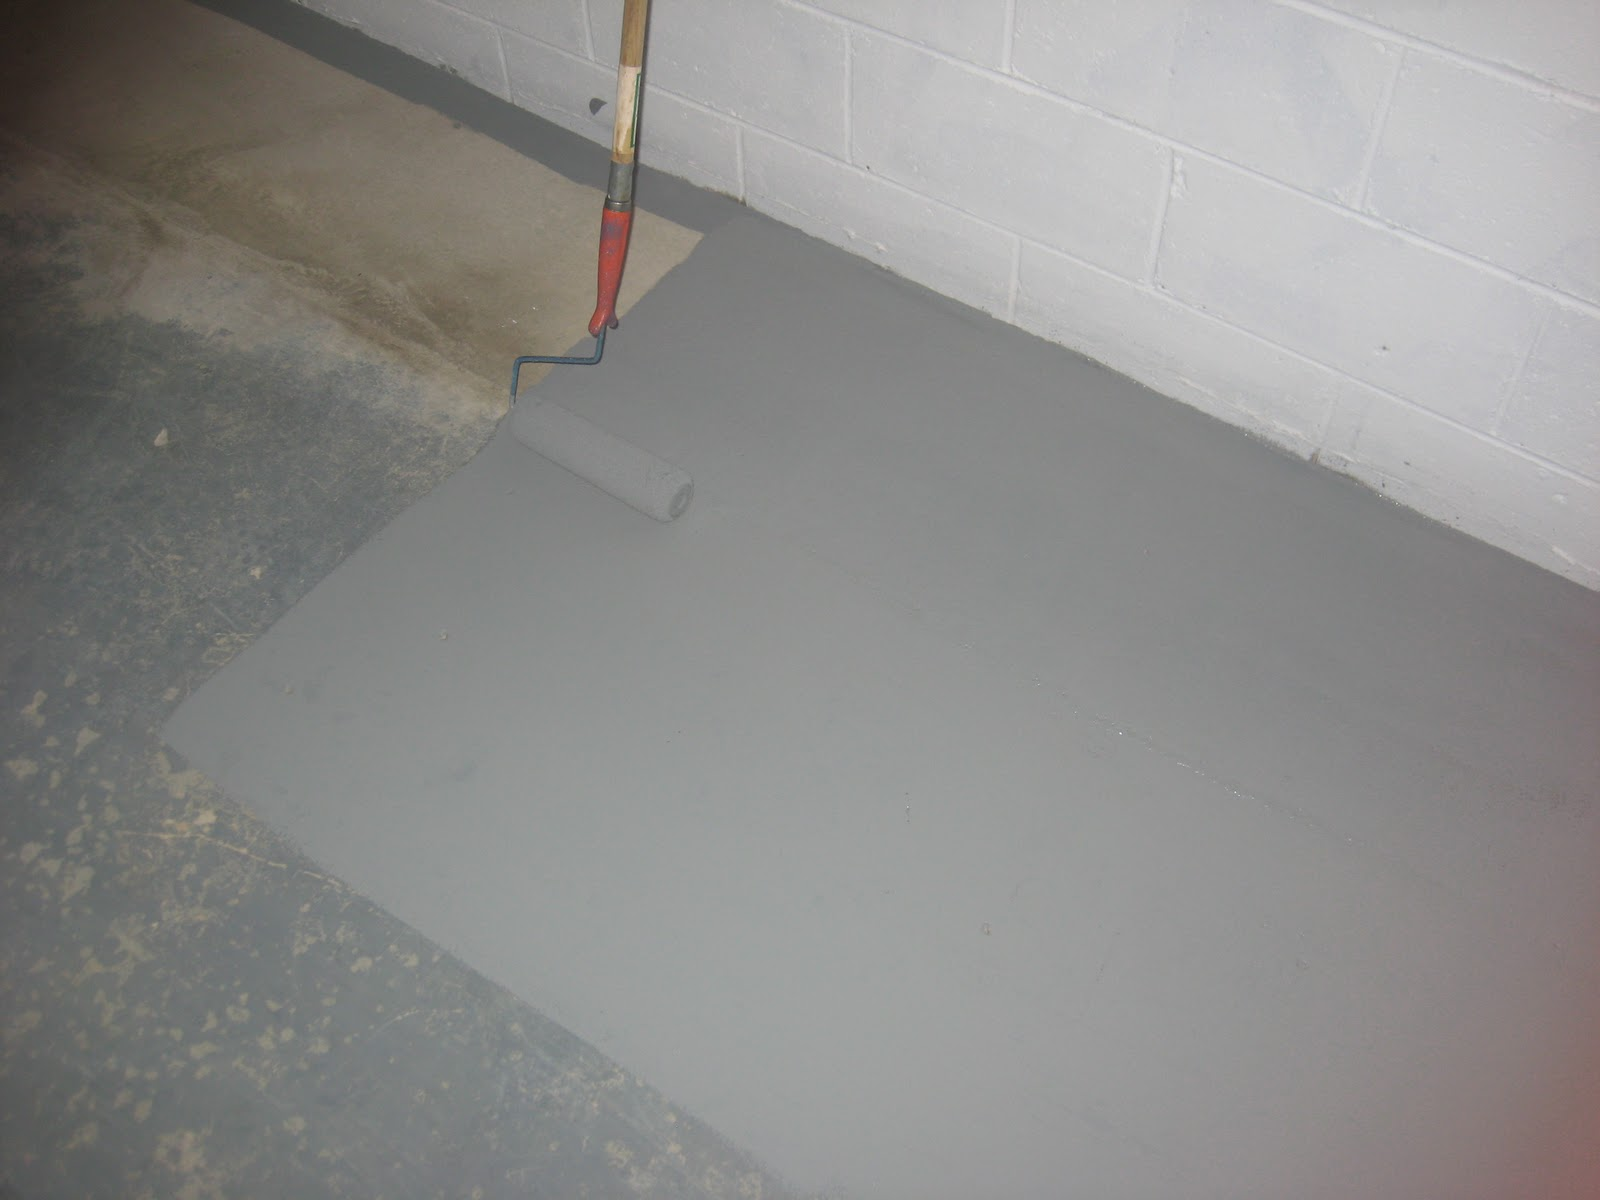 Epoxy Floor Paint Battleship Gray : Southdrive the infamous day all things gray